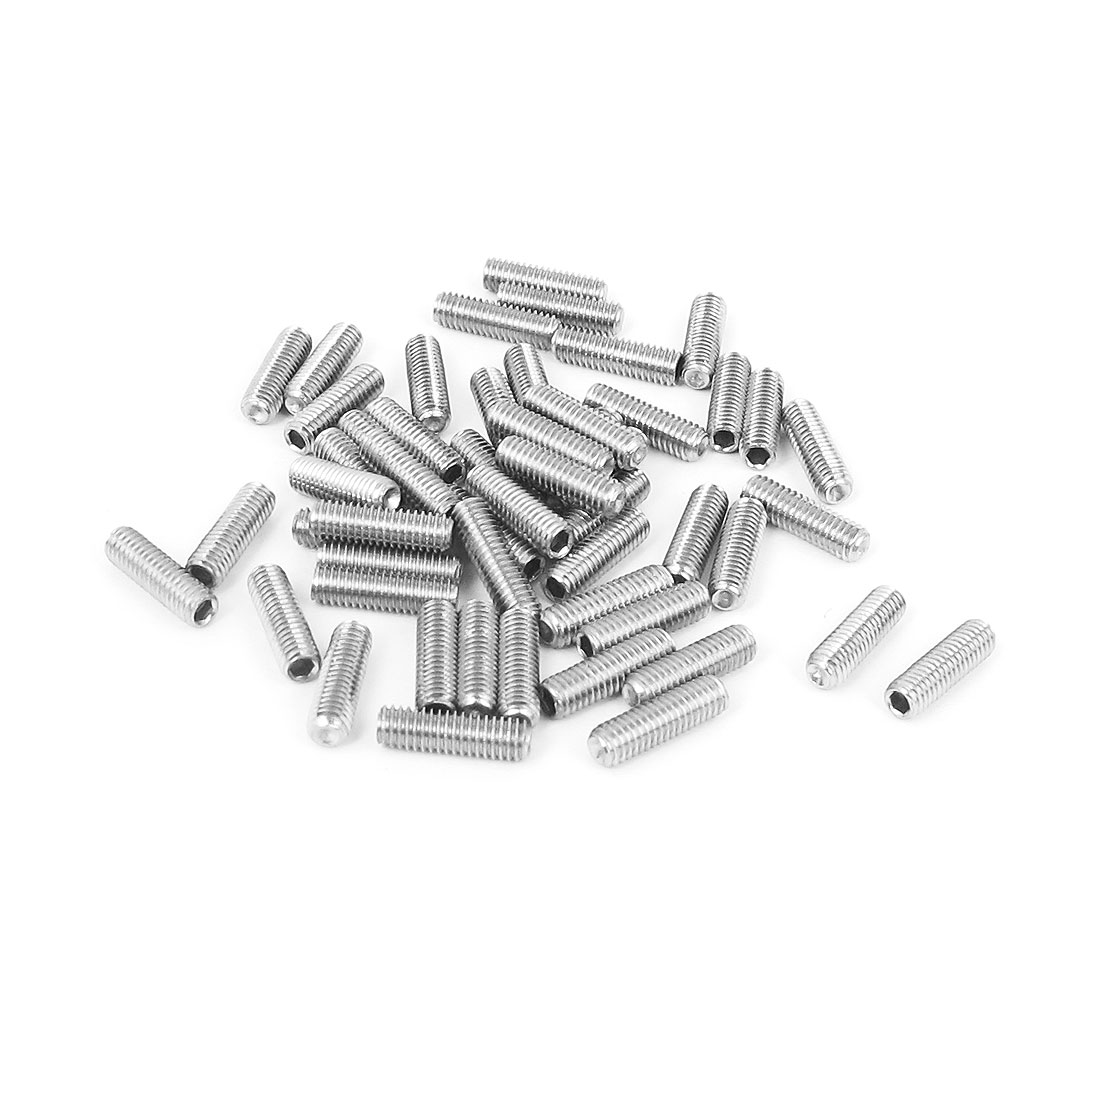 M3x10mm Stainless Steel Hex Socket Set Cap Point Grub Screws Silver Tone 50pcs